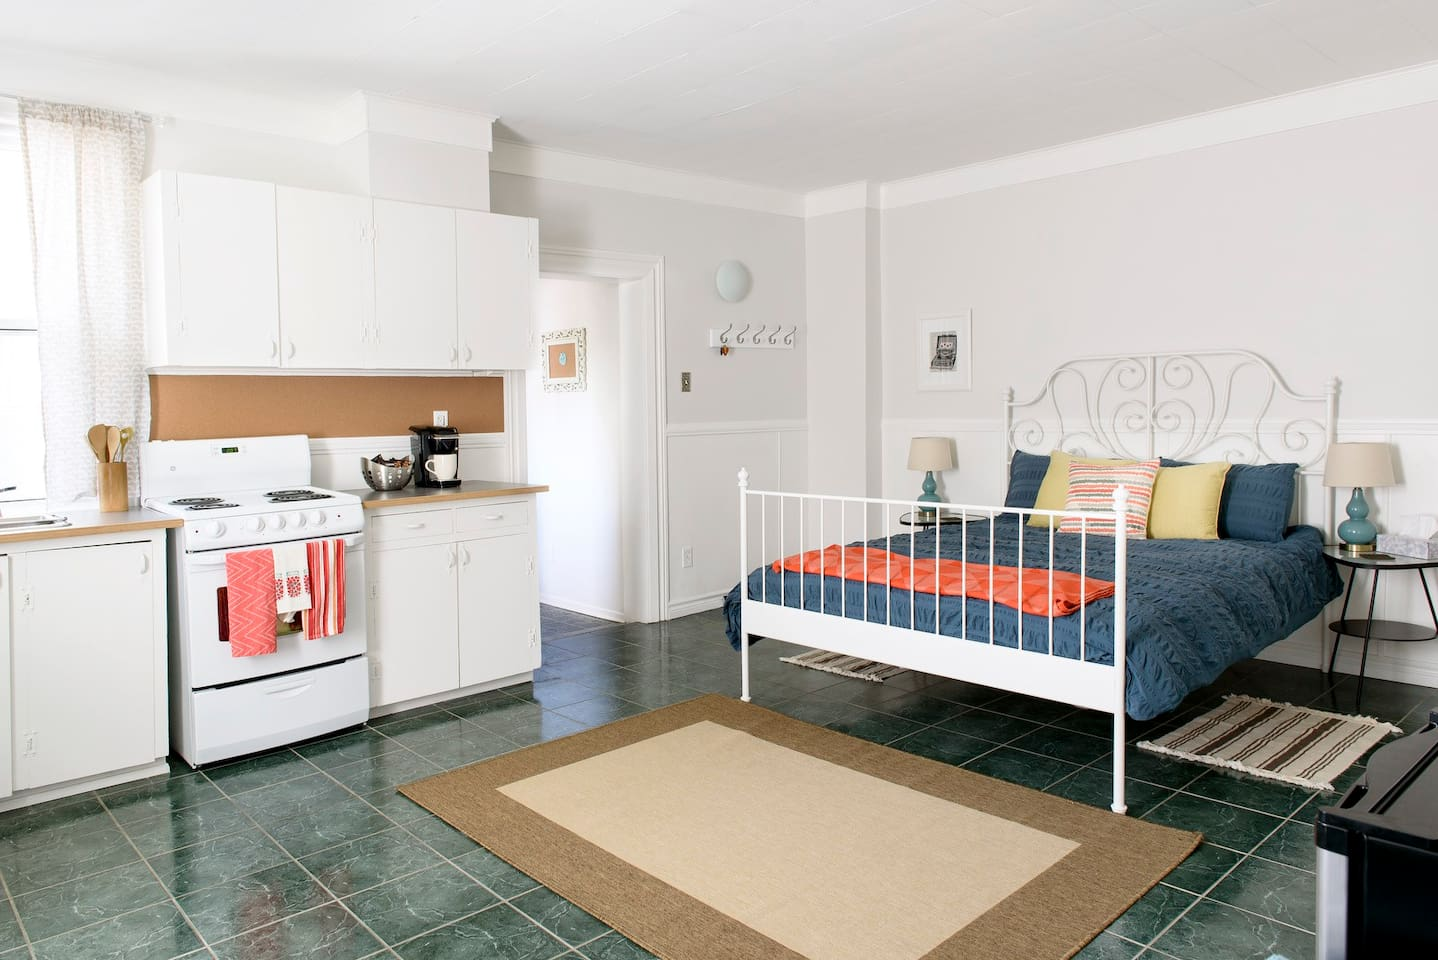 Our AirBnb space is bright & cheerful, just the way we like it.